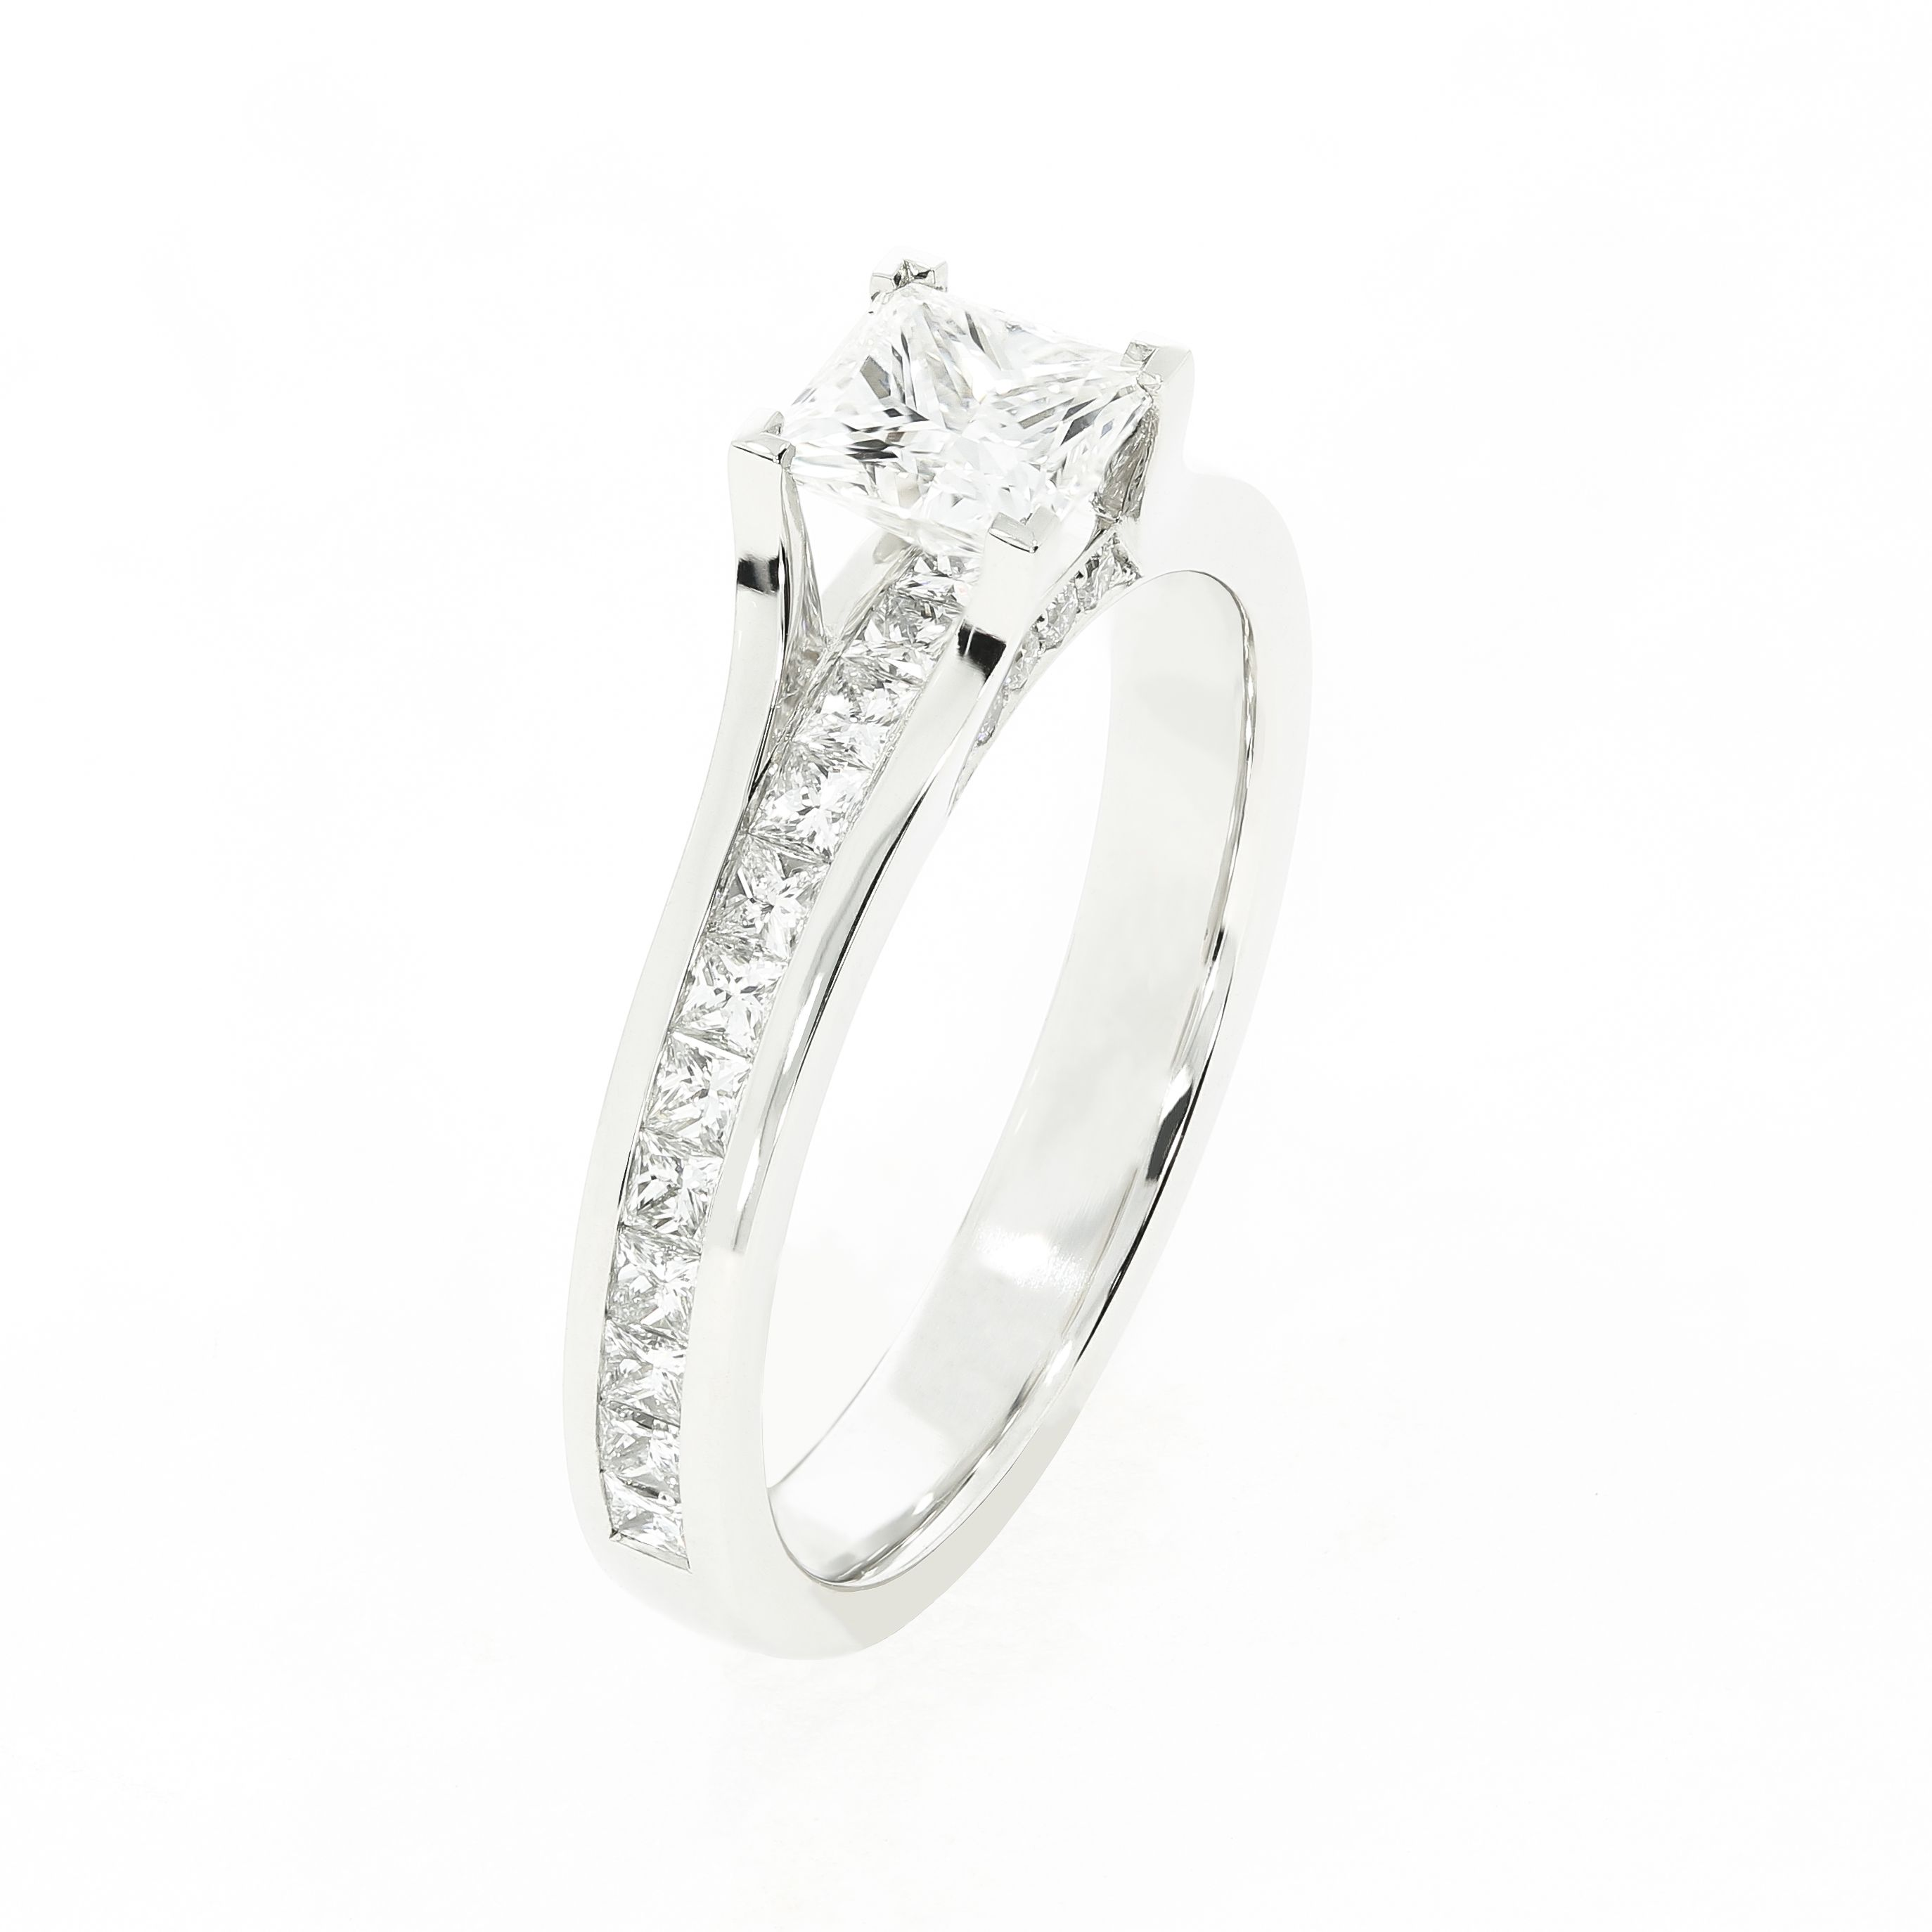 For Many Having An Unusual Engagement Ring Is Important We Re Obses Engagement Ring Designs Unique Beautiful Diamond Engagement Ring Unusual Engagement Rings